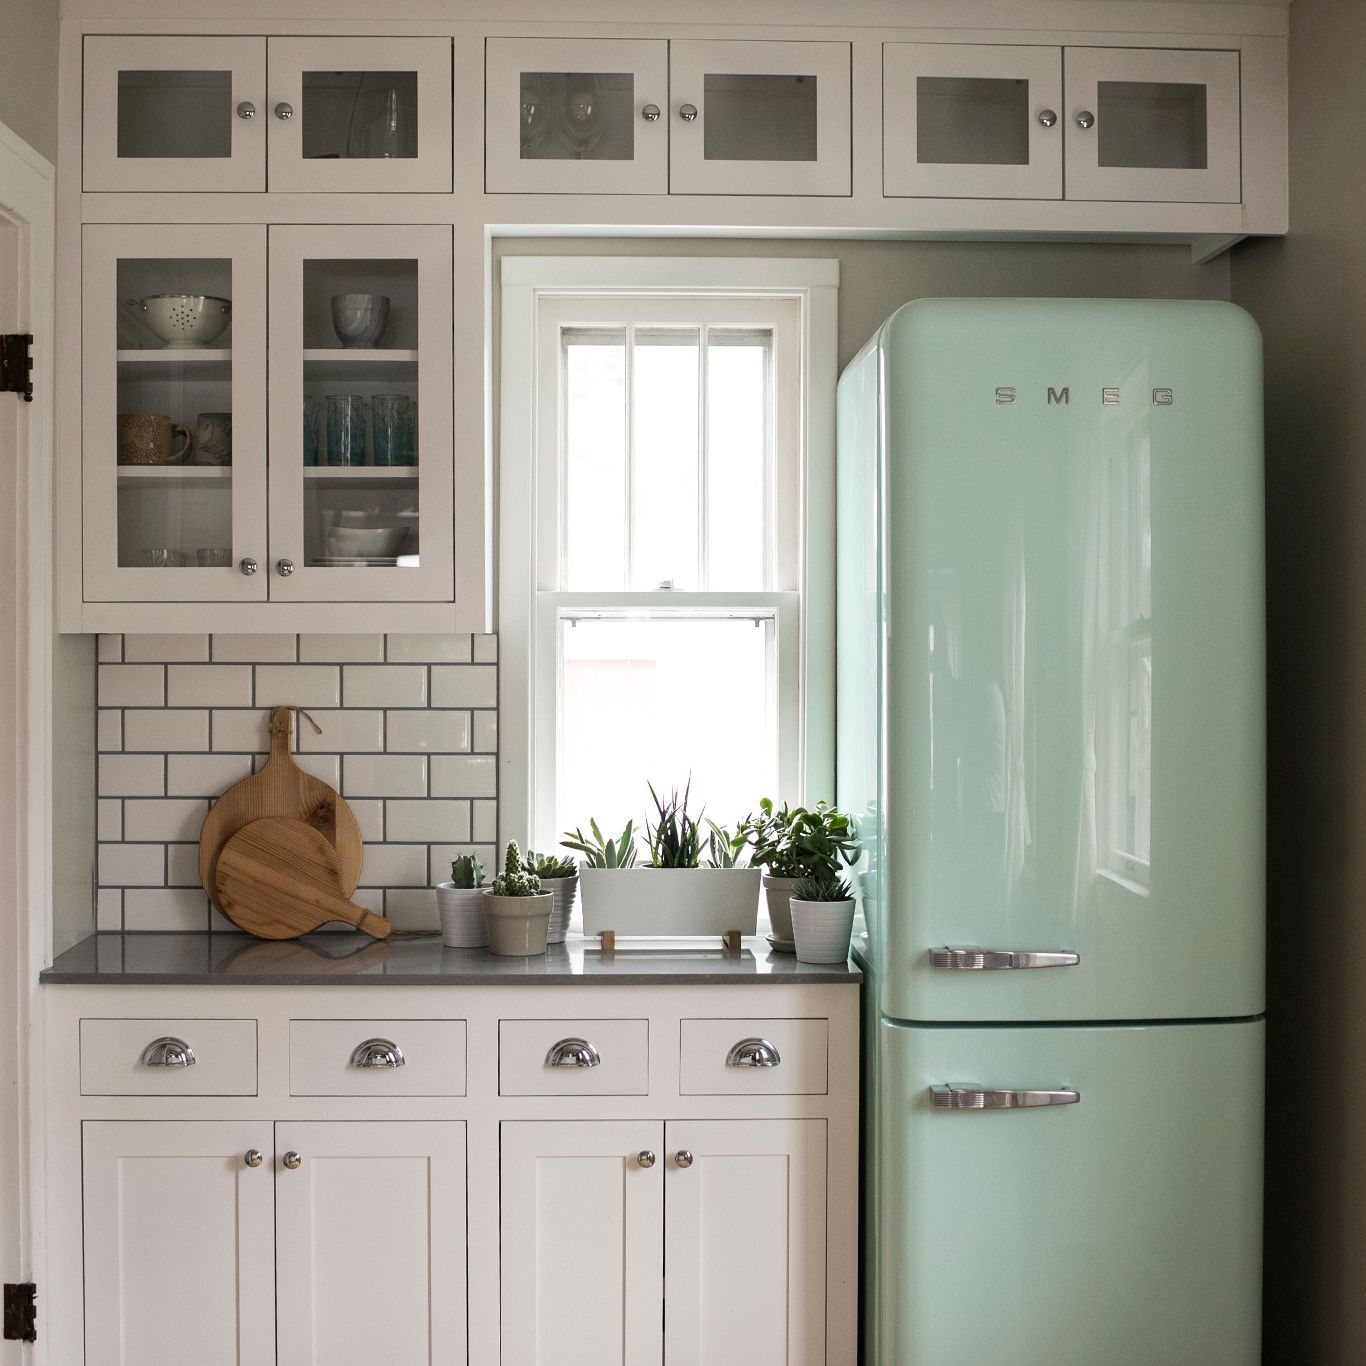 A kitchen with white cabinets  Description automatically generated